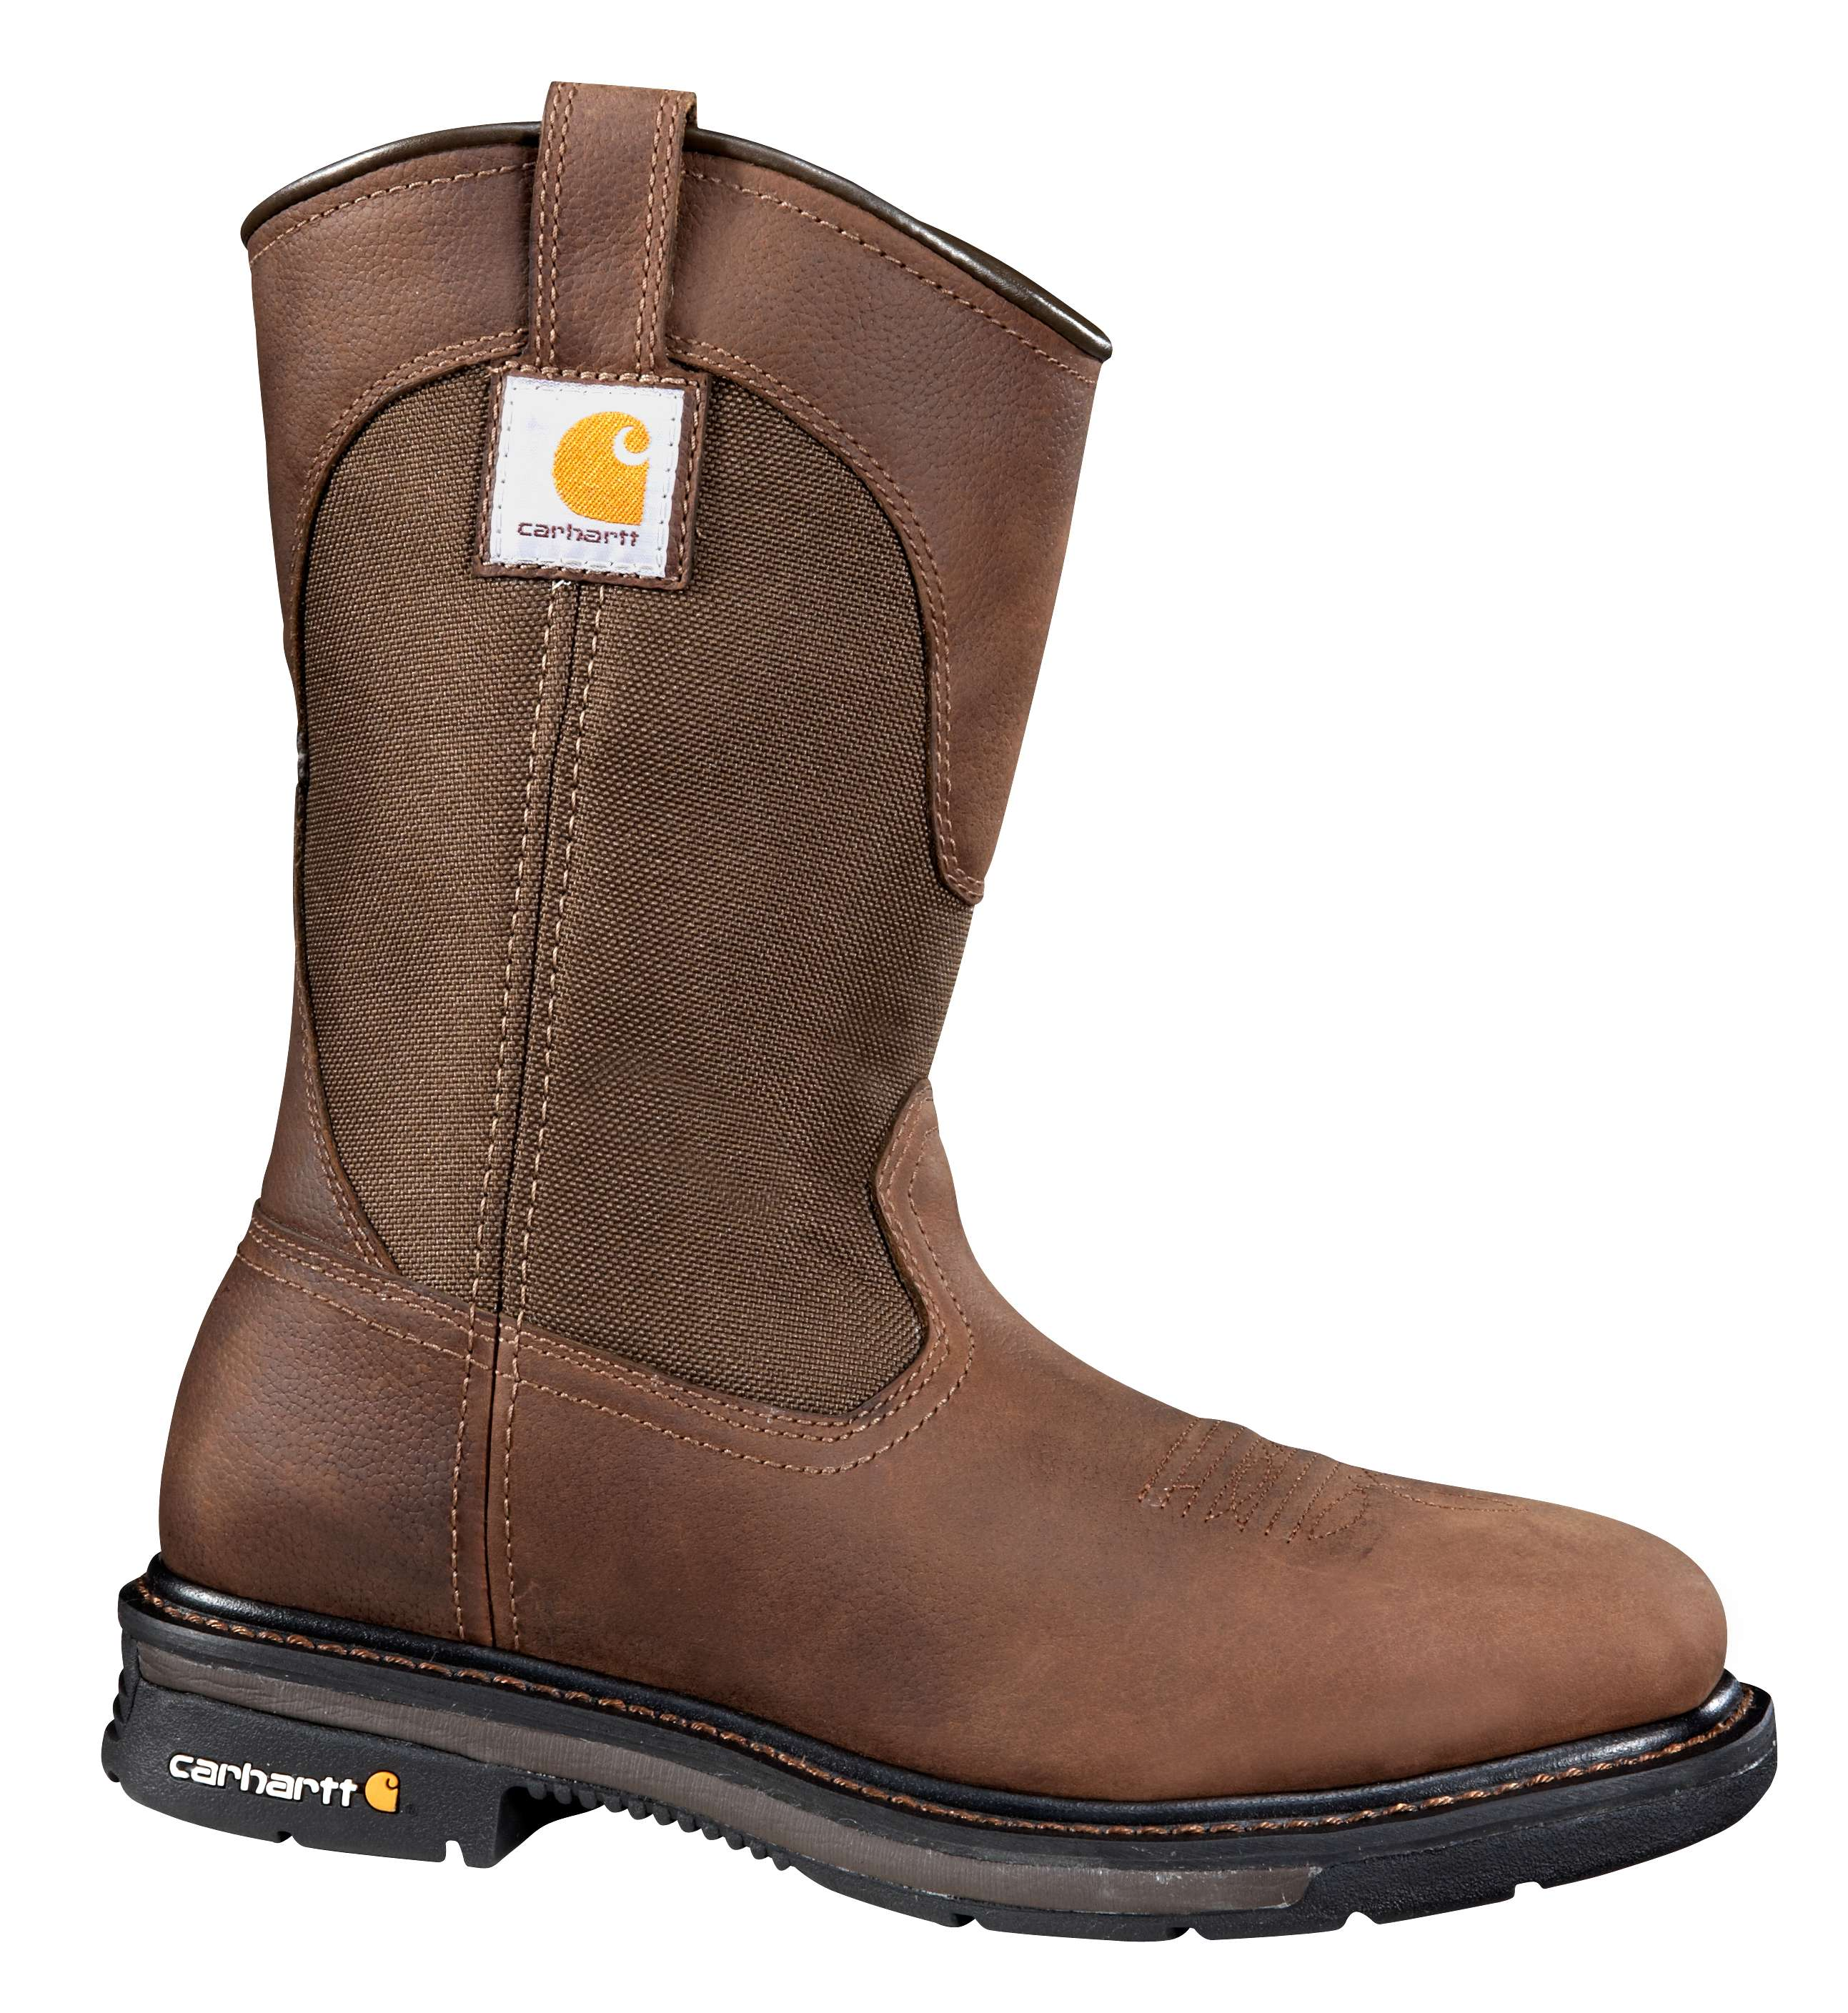 11-Inch Square Steel Toe Wellington Boot